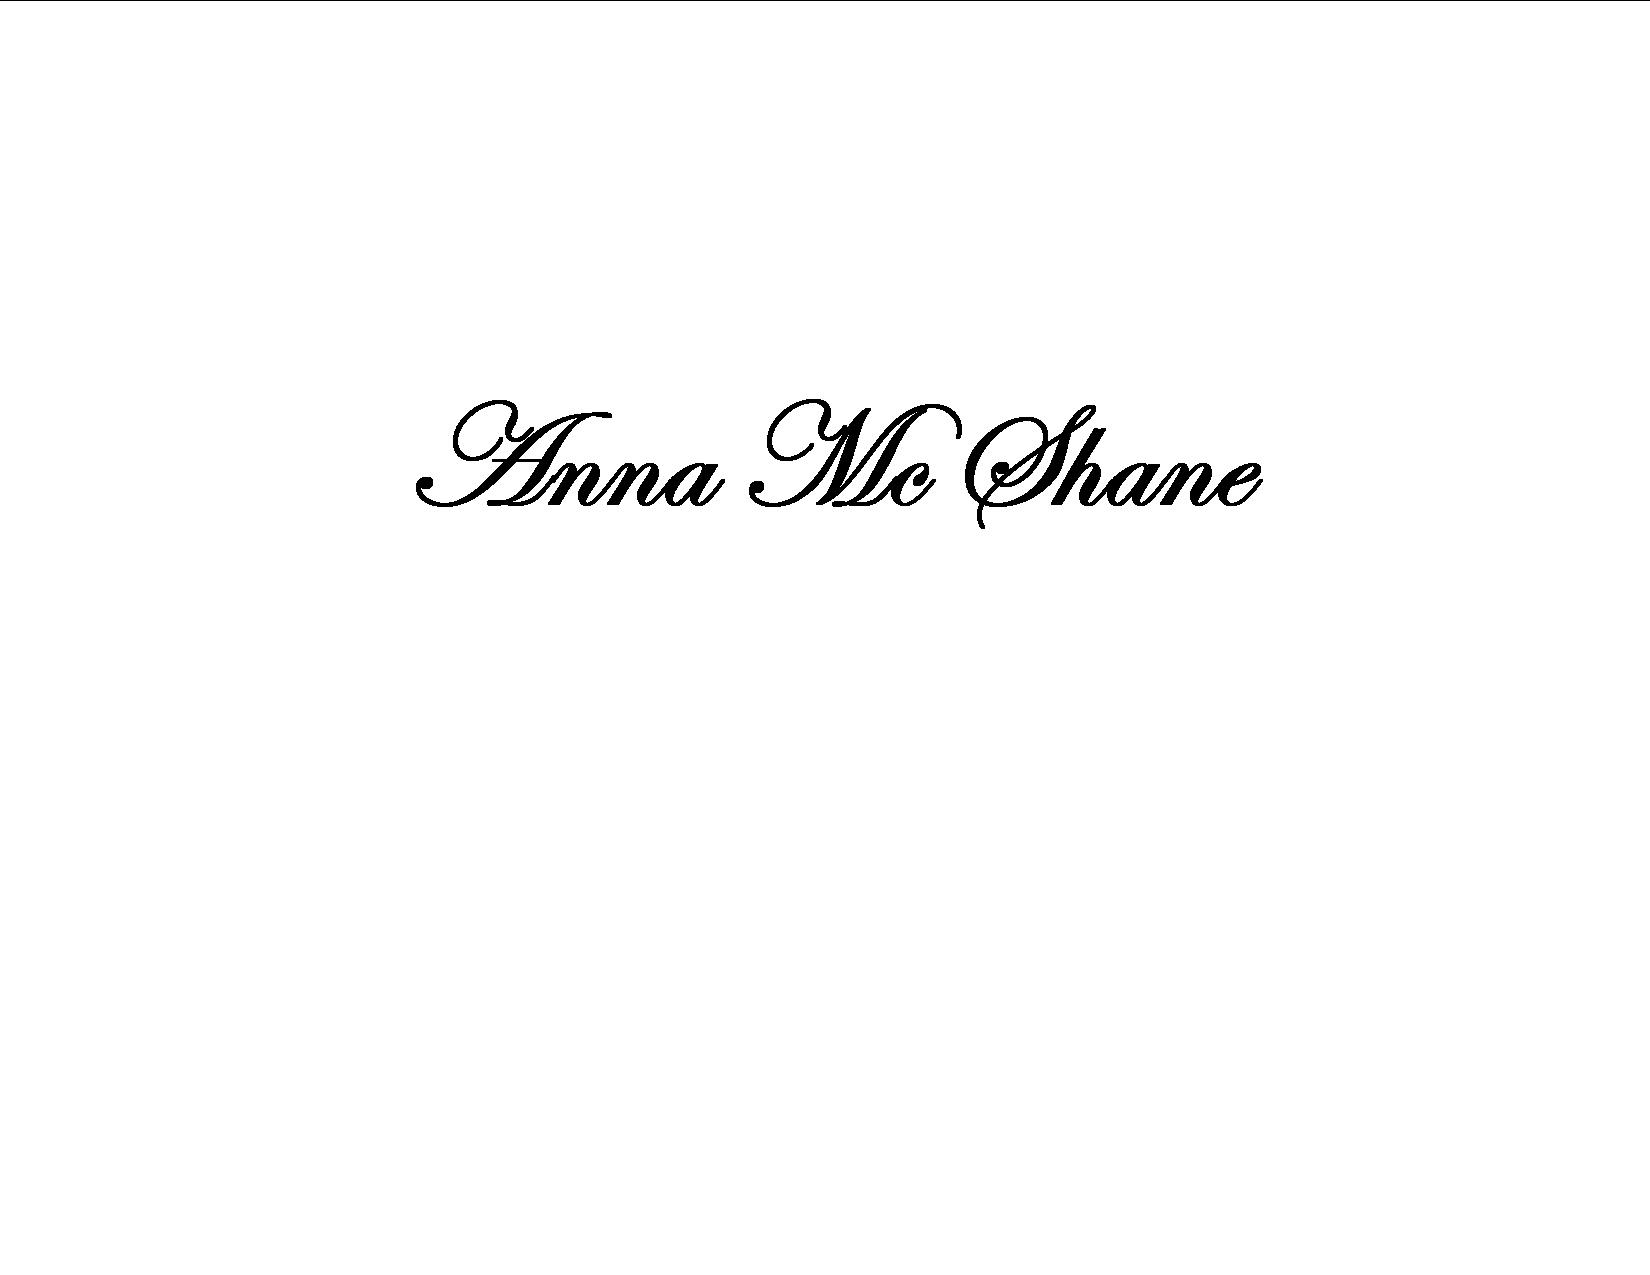 Anna Mc Shane's Signature